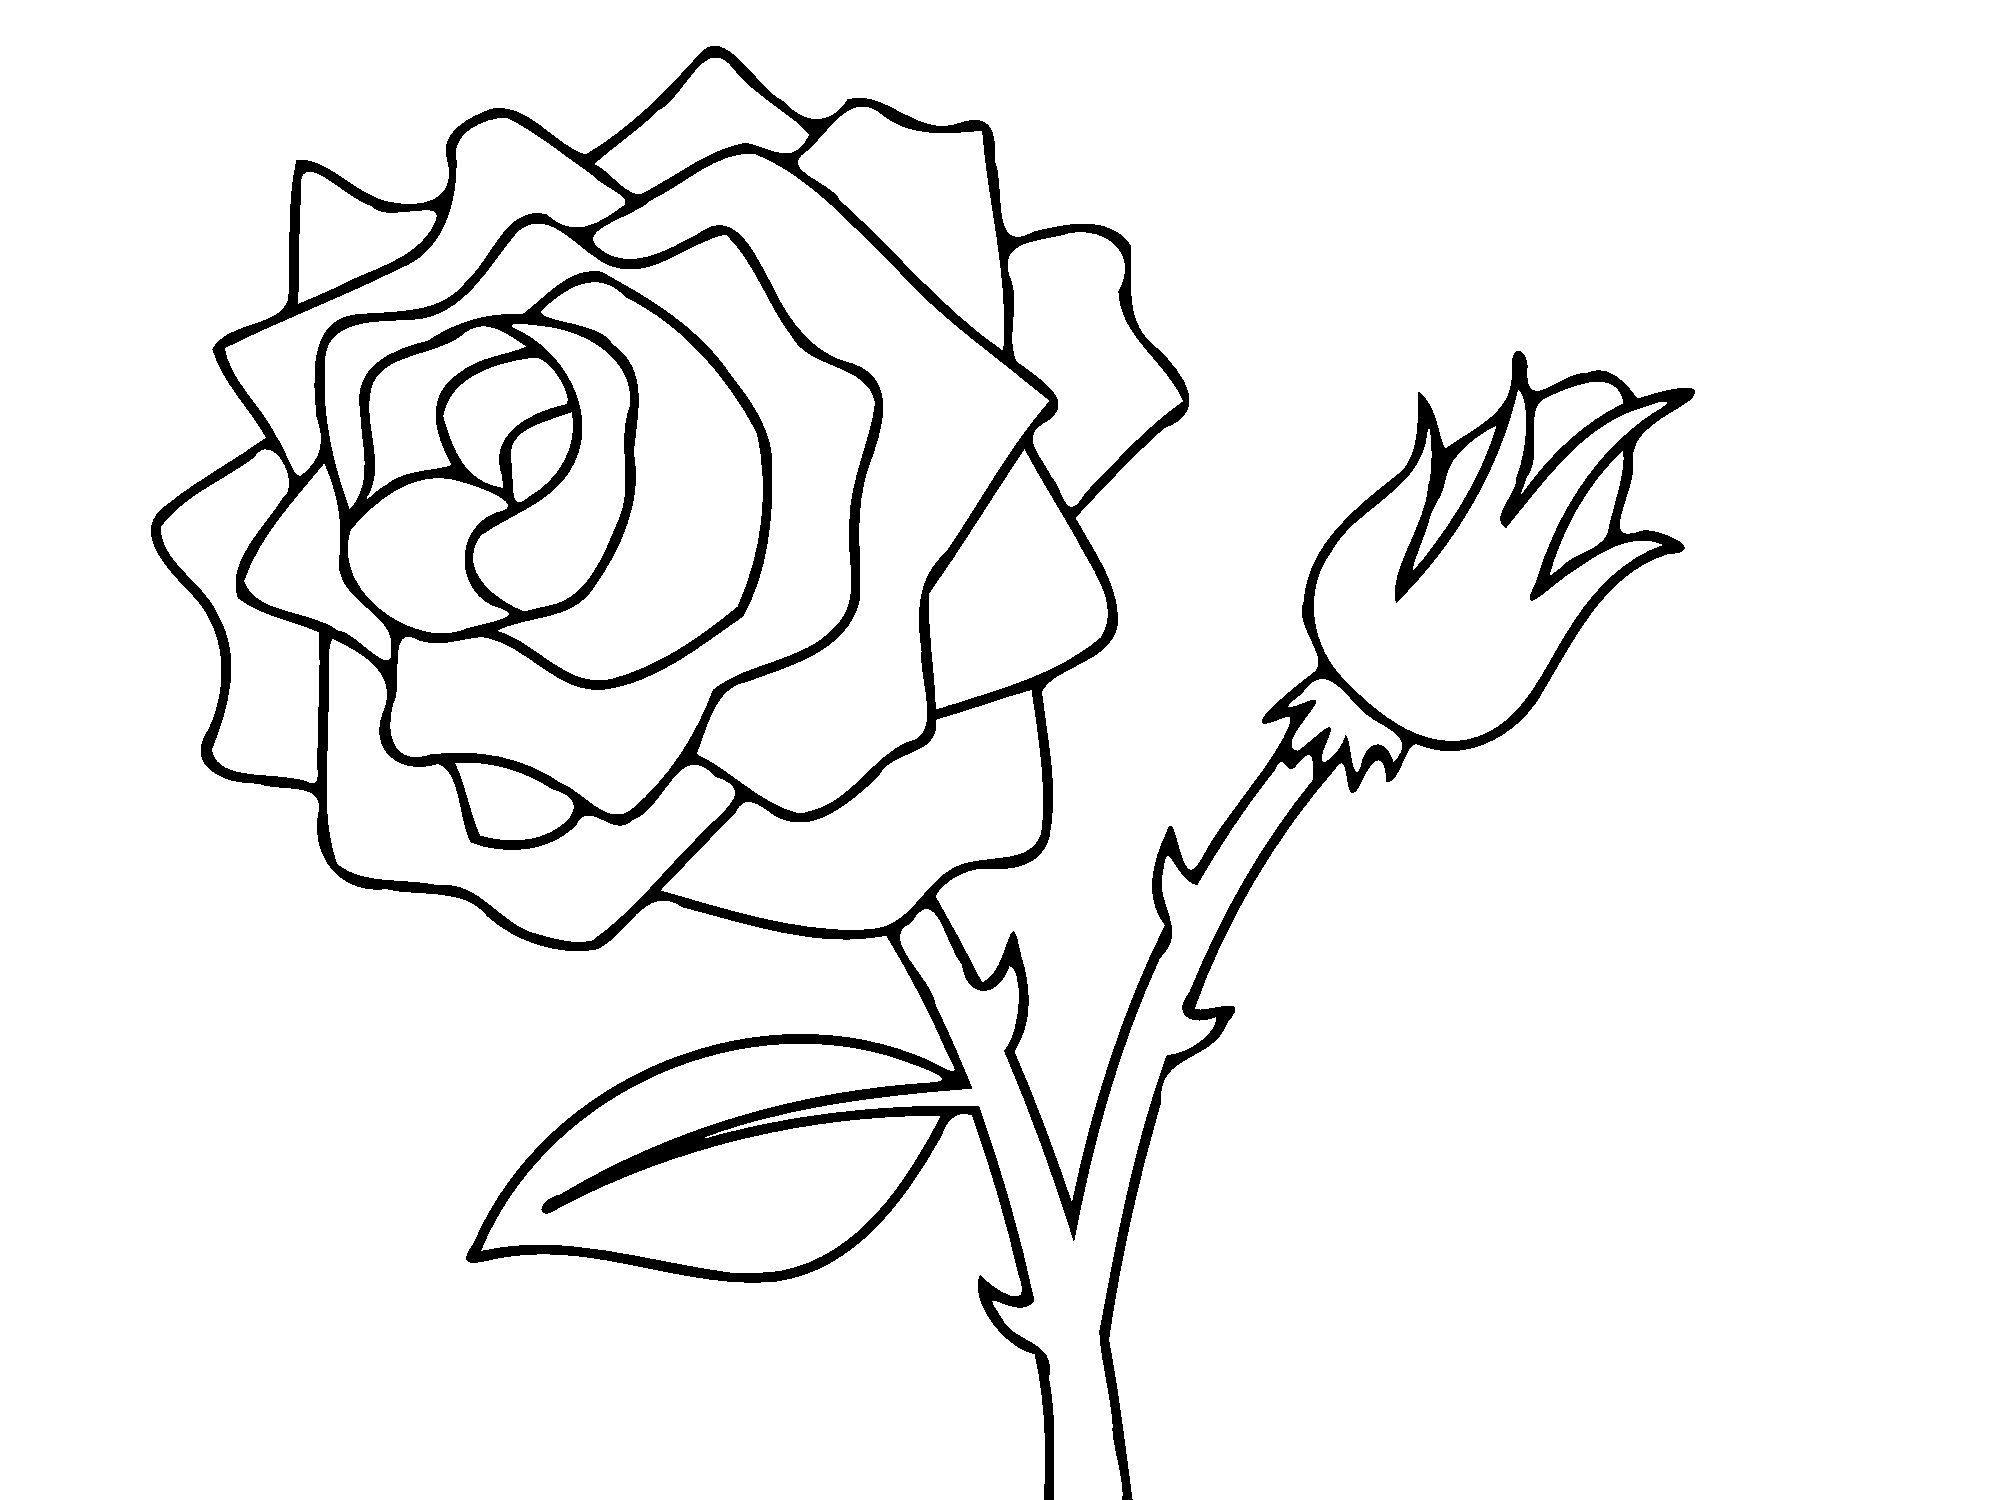 rose coloring pages to print roses coloring pages getcoloringpagescom print to rose pages coloring